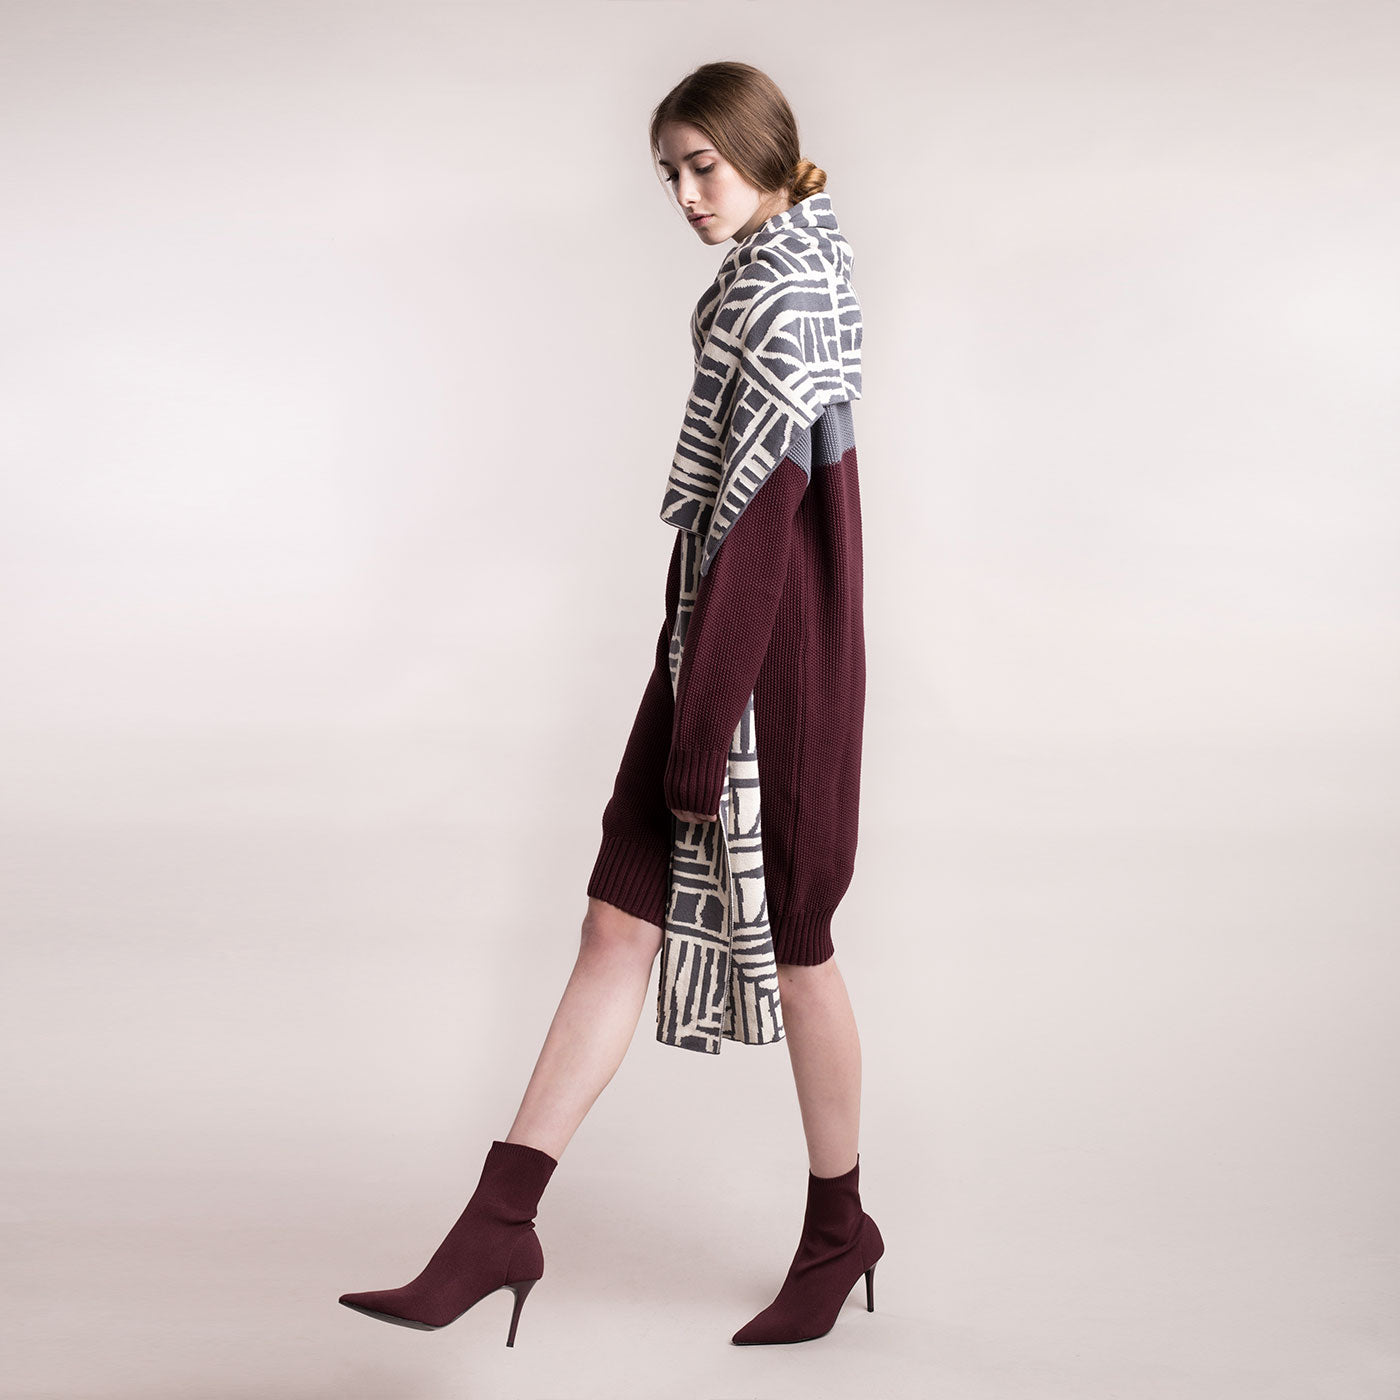 The model wears a grey and cream, sustainable organic cotton, knitted arty bricks scarf, side view.